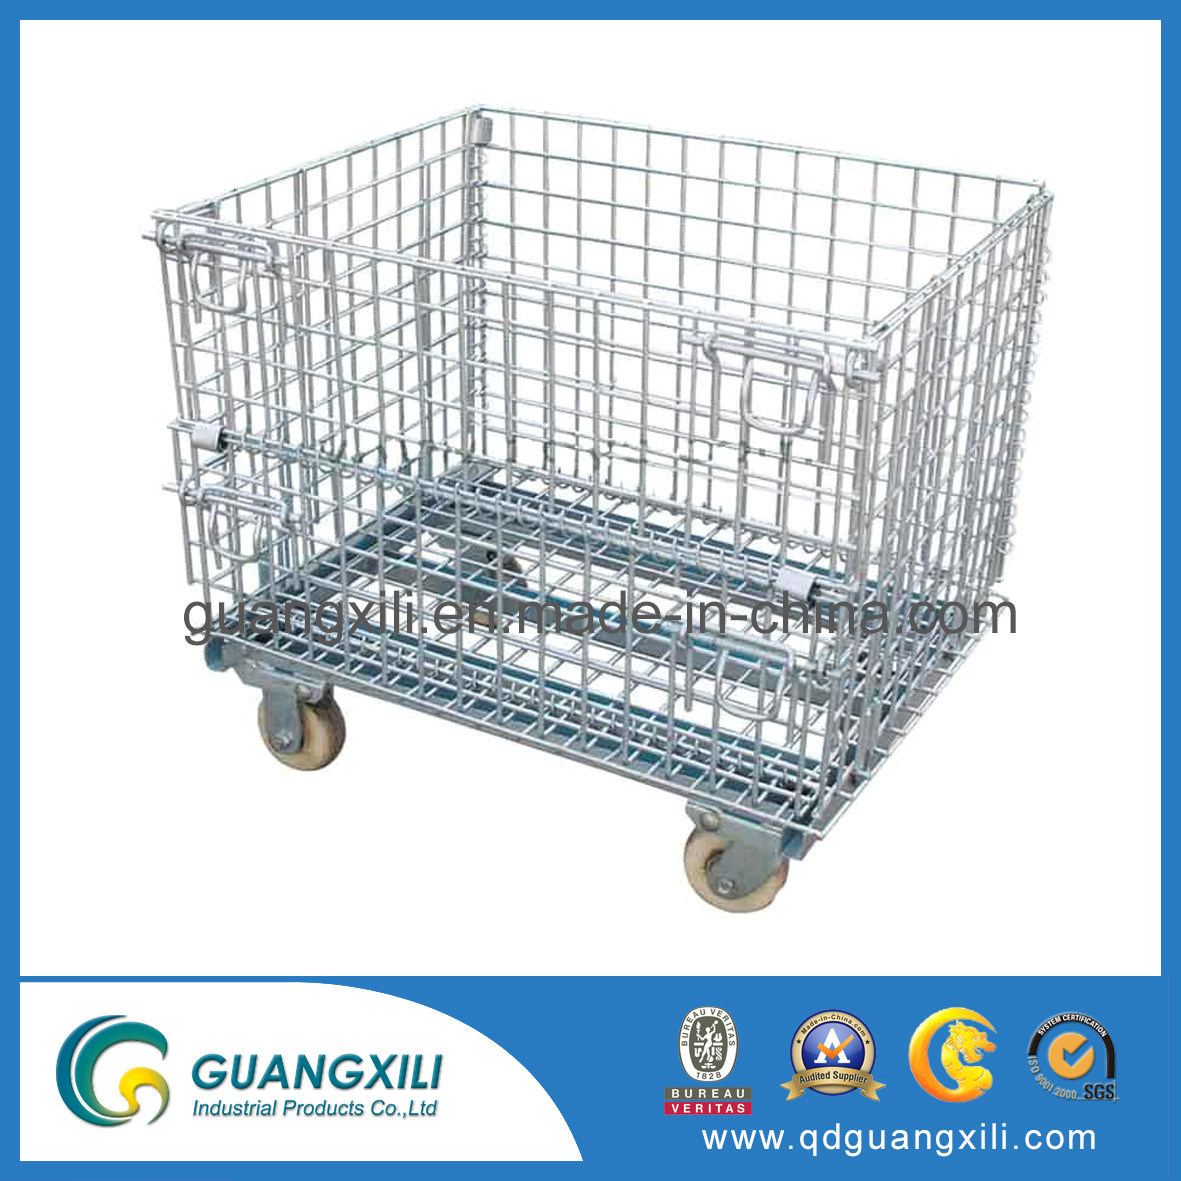 Wholesale Baskets Containers, China Wholesale Baskets Containers ...